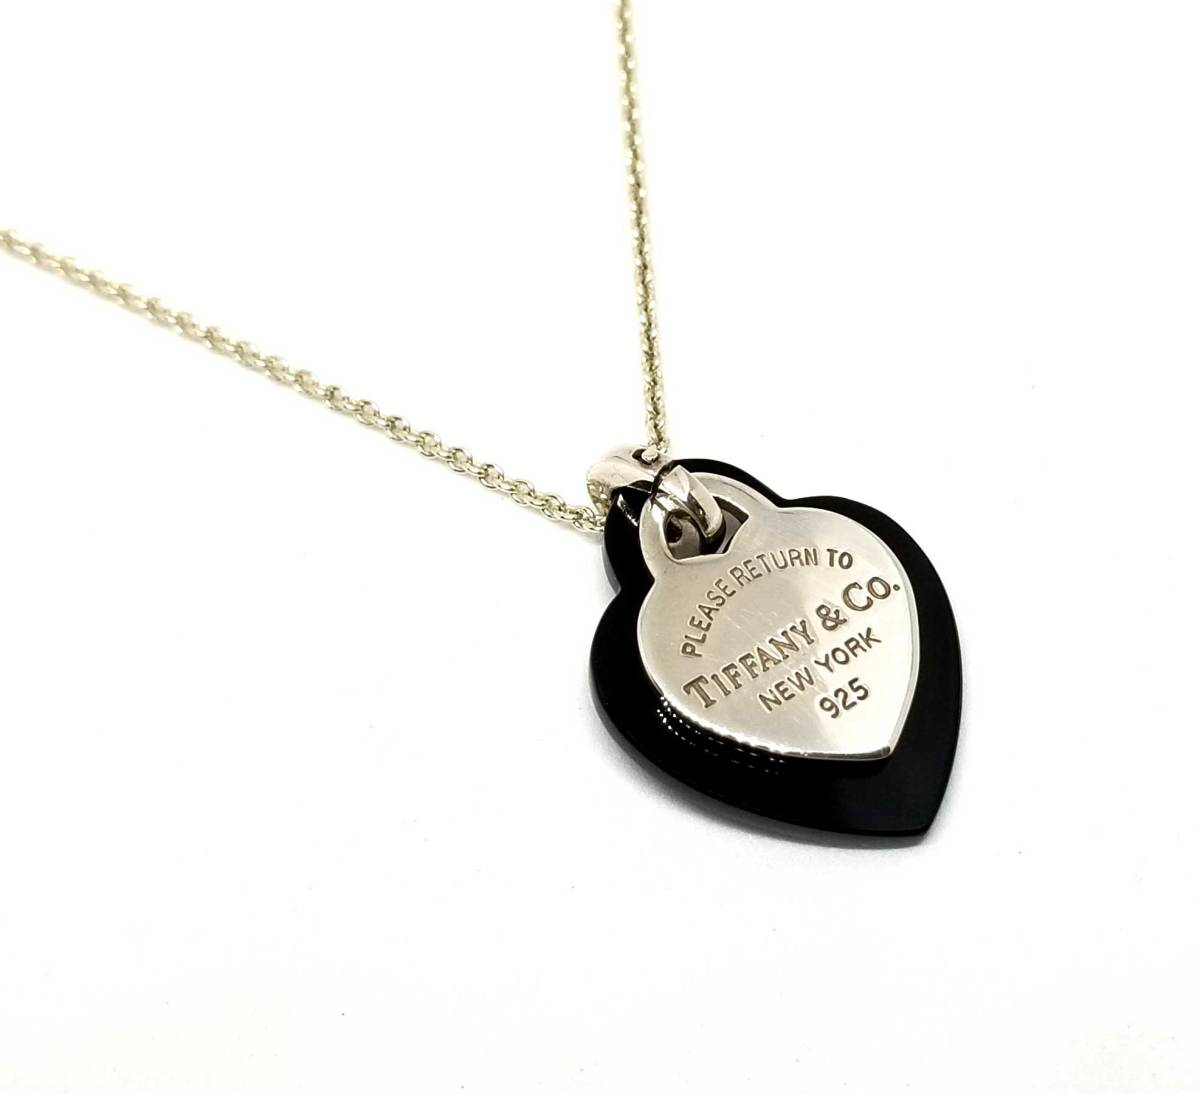 70e97e468e496 Tiffany return toe Tiffany necklace pendant black double heart tag charm  Lady's silver SV925 heart beauty product TIFFANY Tiffany & Co.